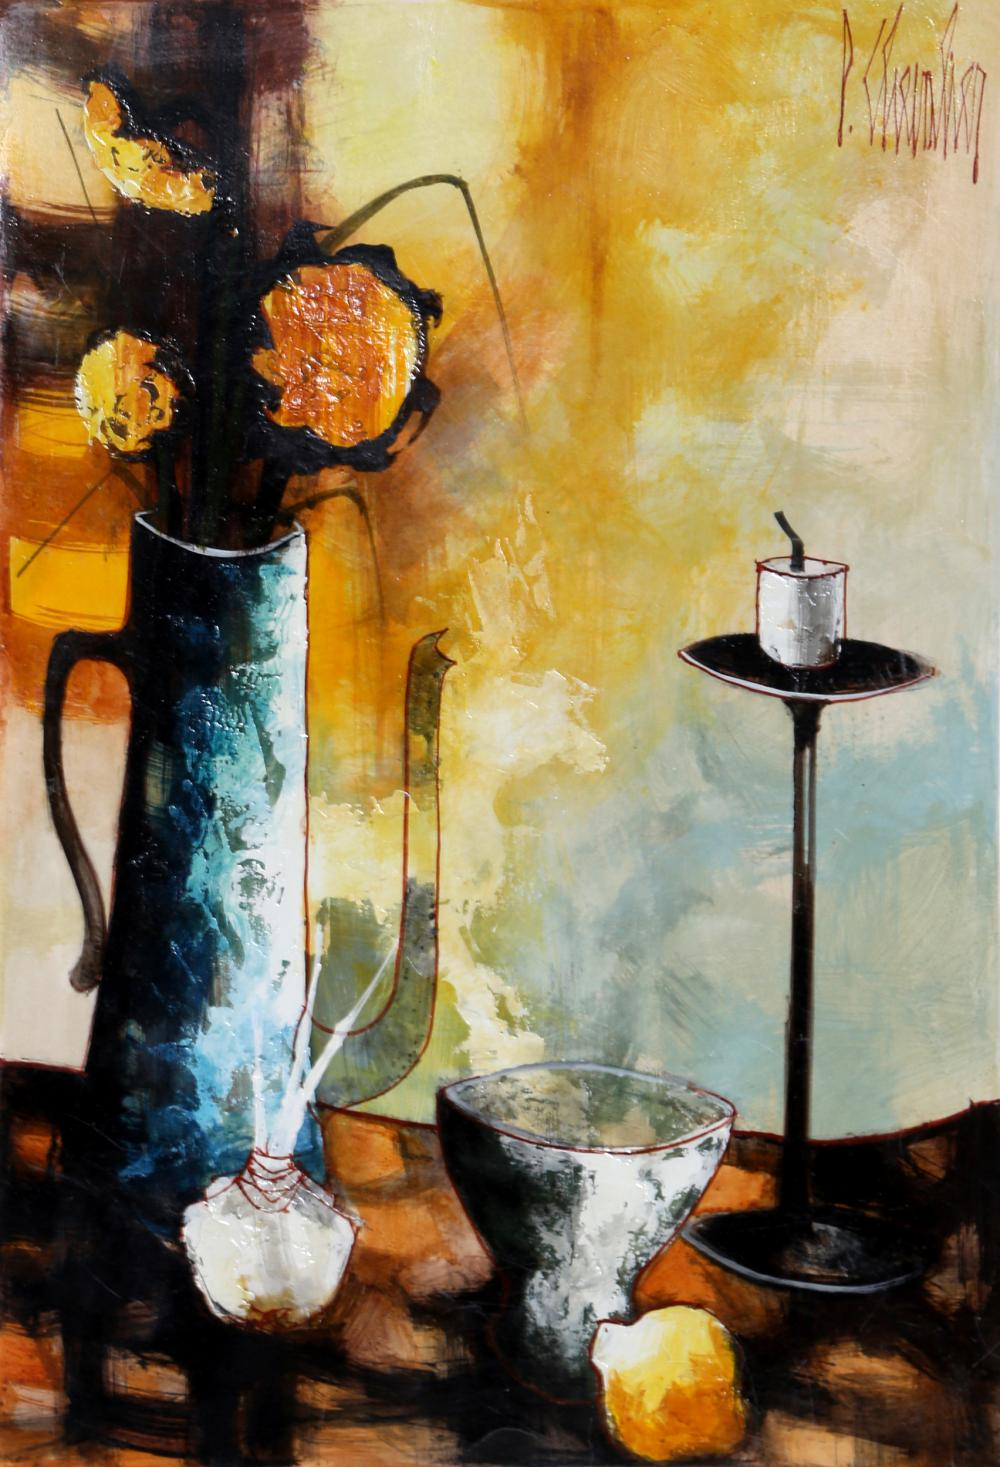 Paul Maurice Chevalier, Vase and Lamp, Oil Painting